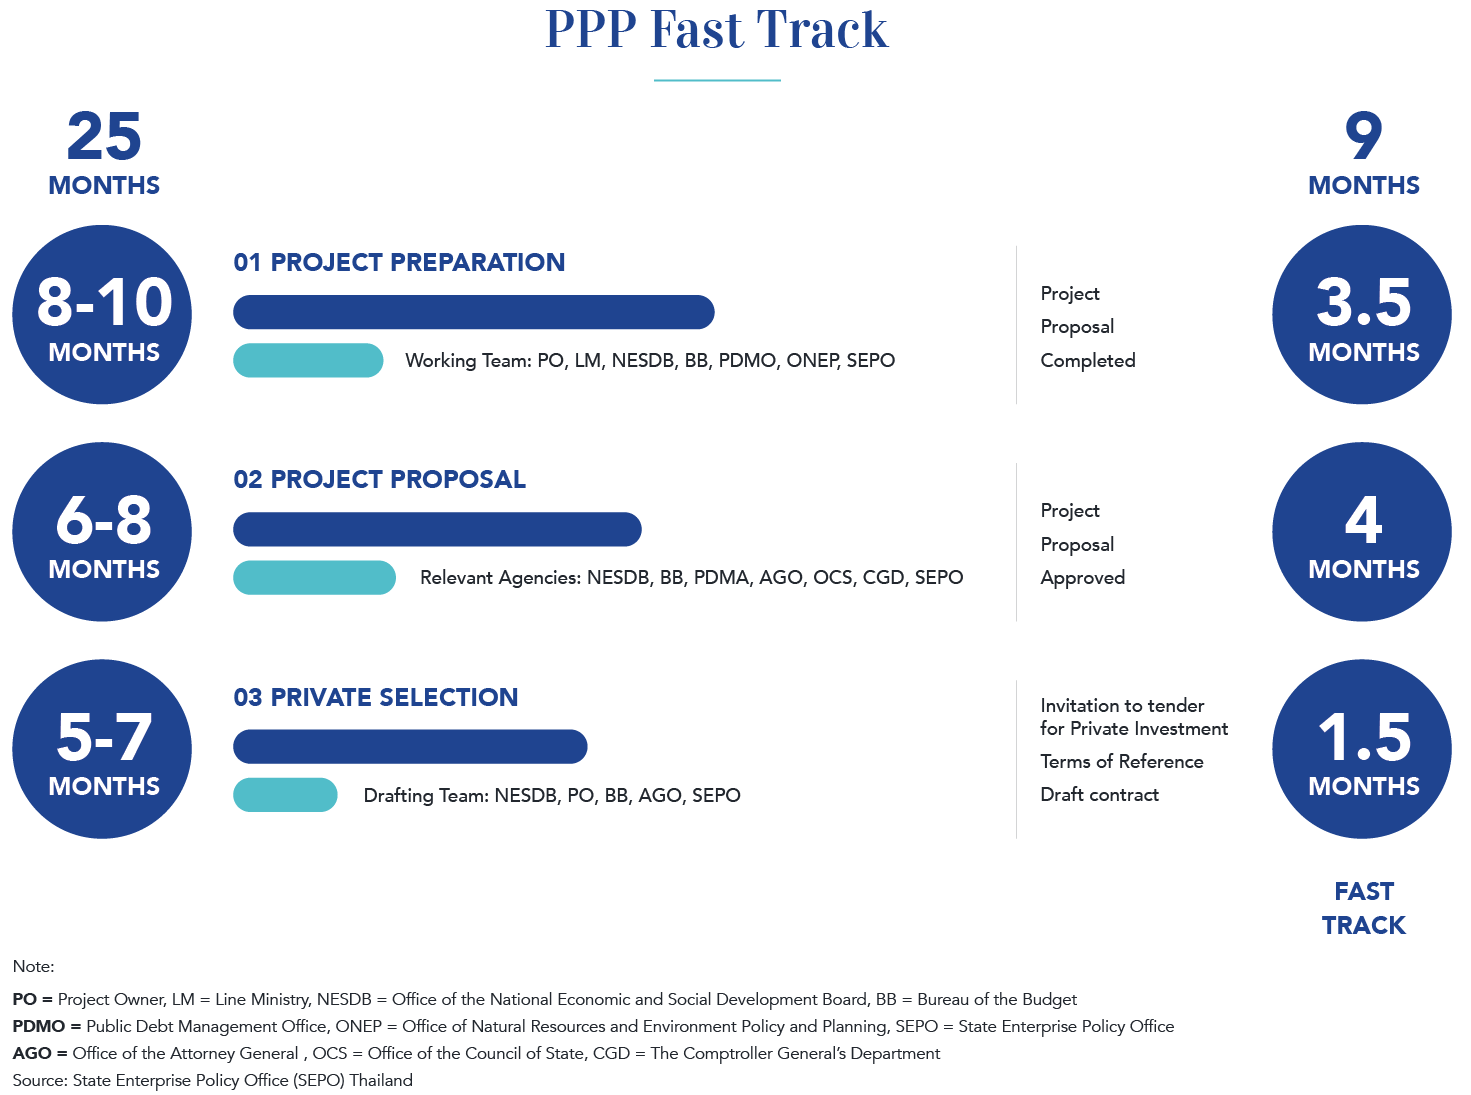 Public-Private Partnership model and its merits in attracting Foreign Direct Investment